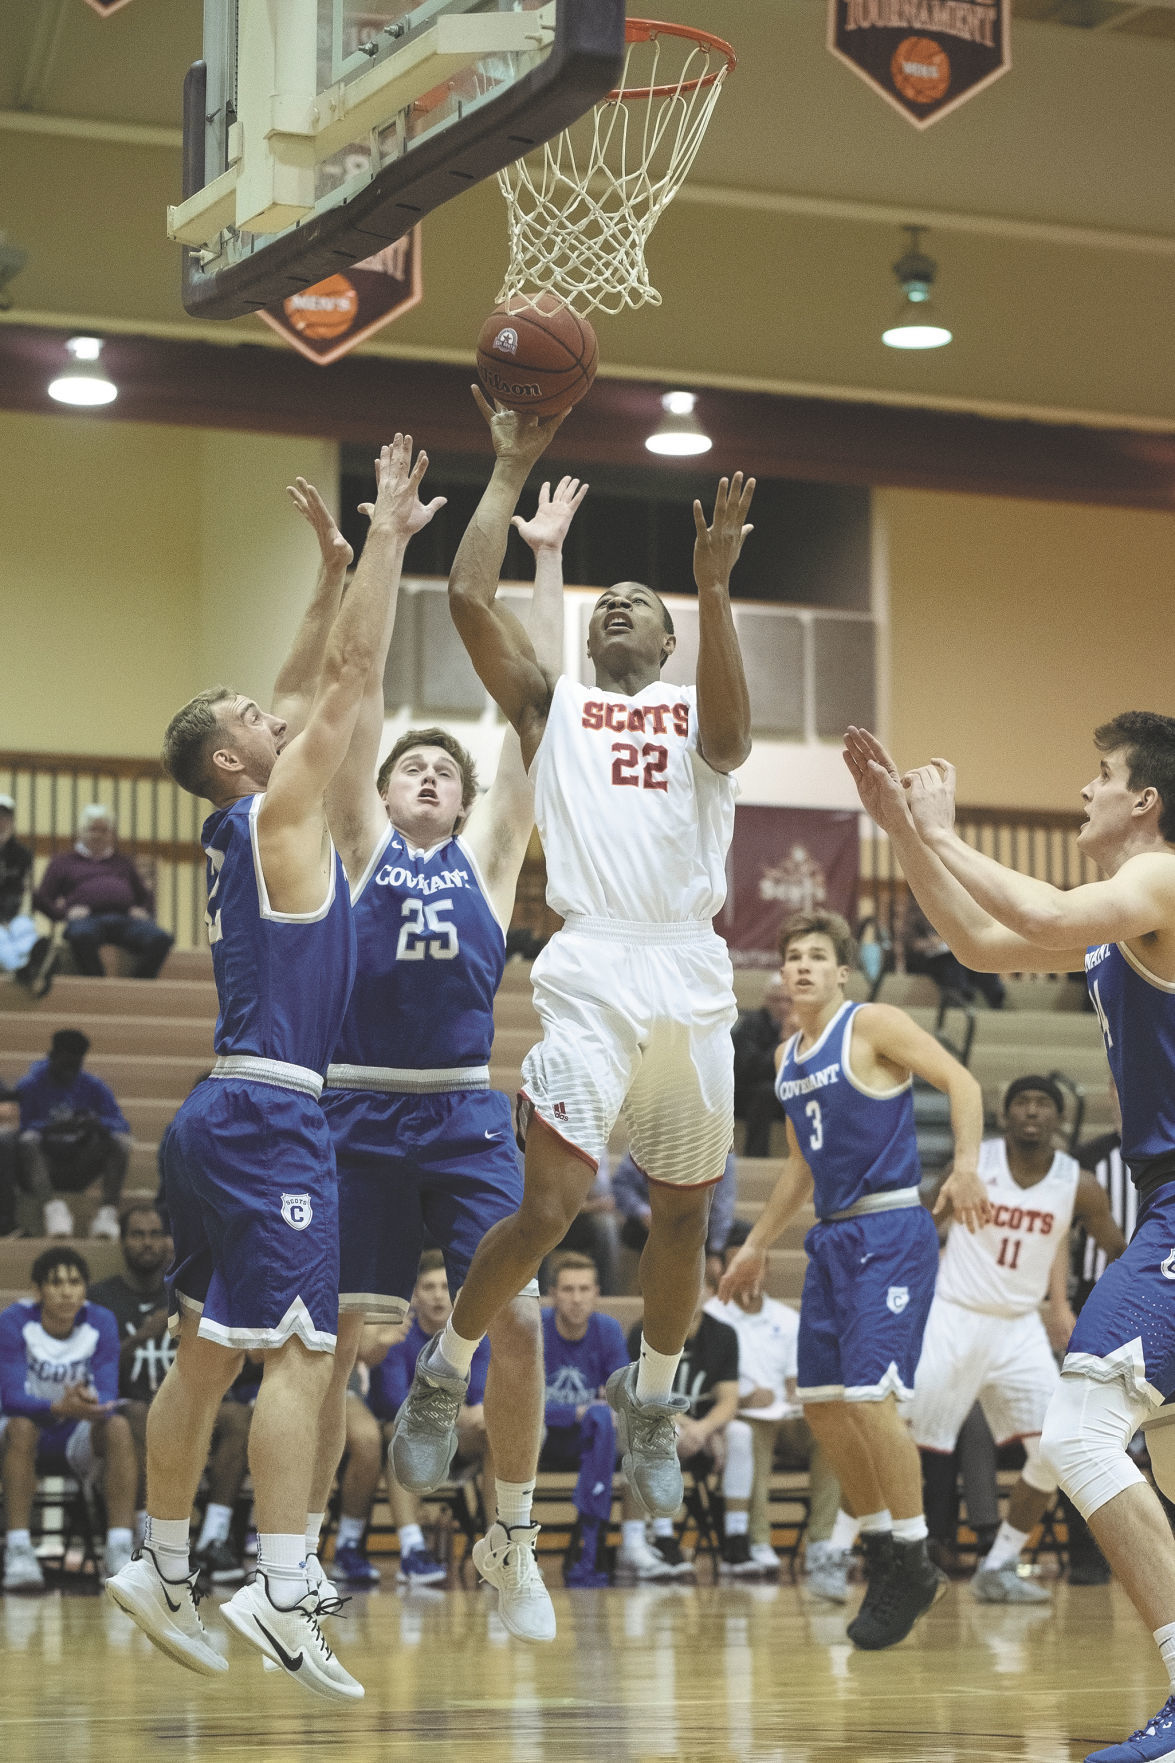 COLLEGE BASKETBALL: Maryville College's Nicholas Clifton vs. Covenant